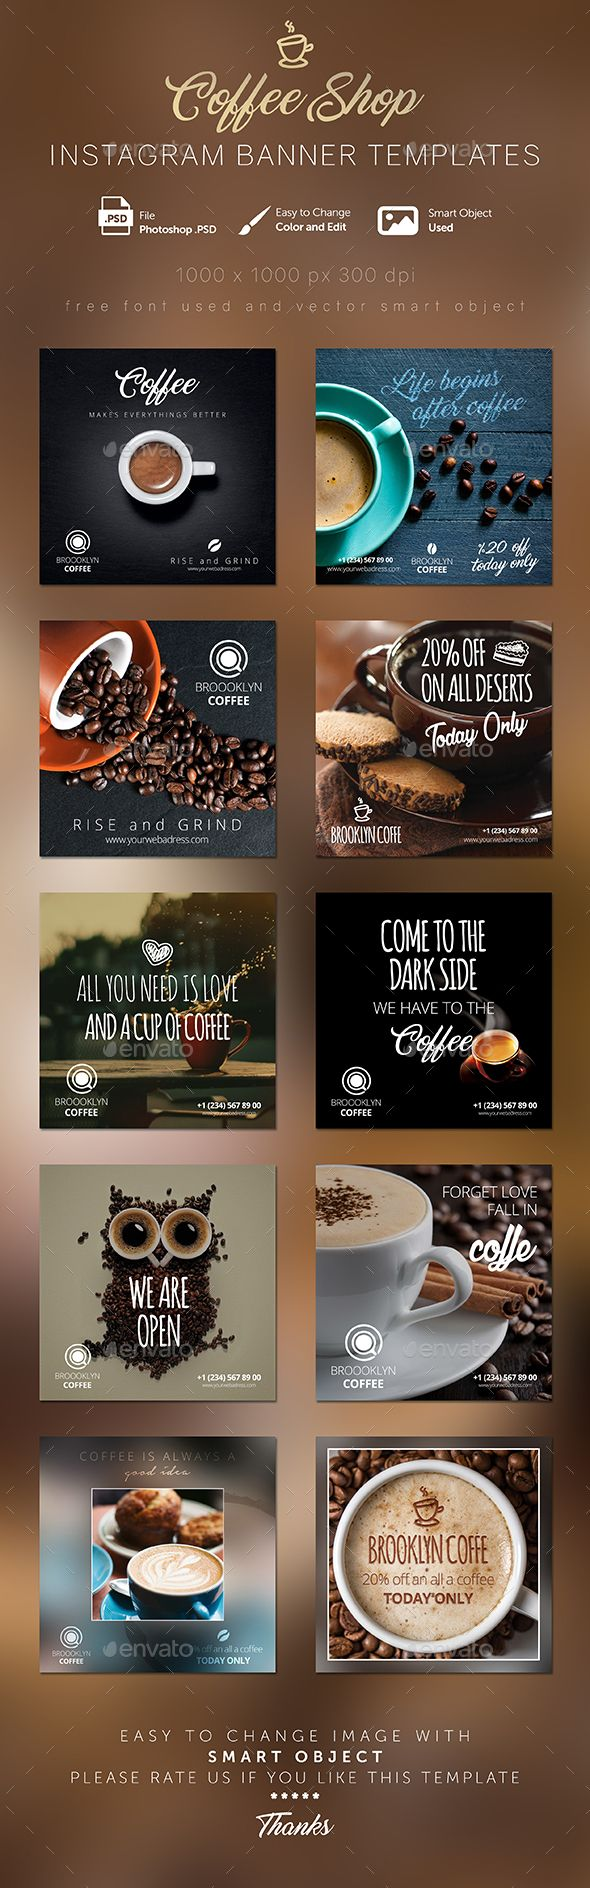 Coffee Shop Instagram Banner Templates - Social Media Web Template PSD. Download here: http://graphicriver.net/item/coffee-shop-instagram-banner-templates/16575215?ref=yinkira